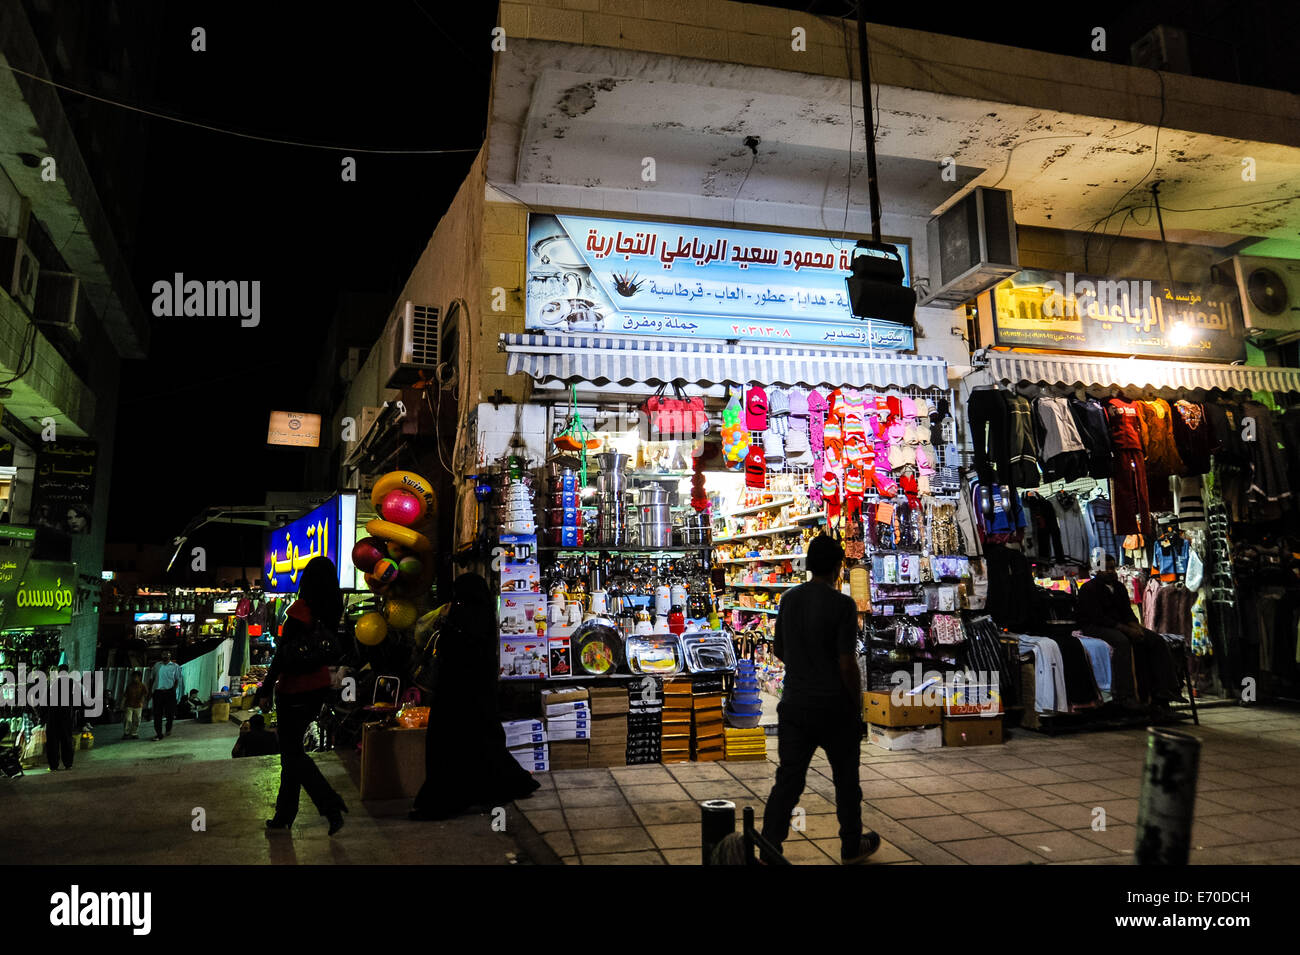 Aqaba is Jordan's only coastal city. Shopping street at night. - Stock Image